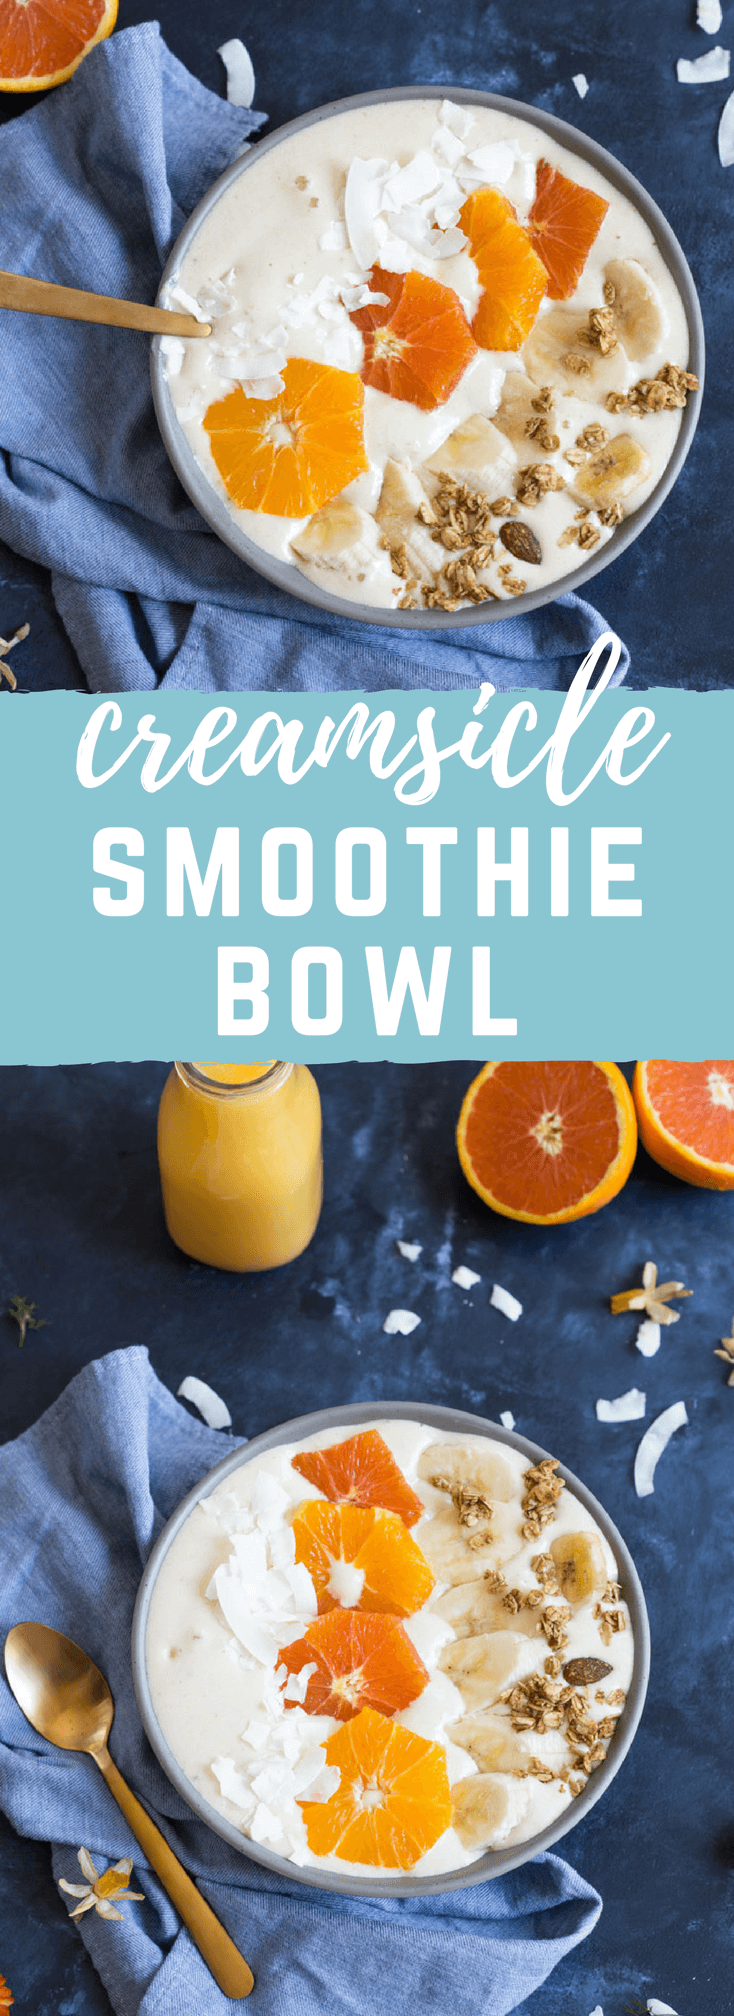 Orange Creamsicle Smoothie Bowl! Creamy, dreamy and everything you want in a smoothie that you can spoon. I love spooning my smoothies! Spooning > Sipping.